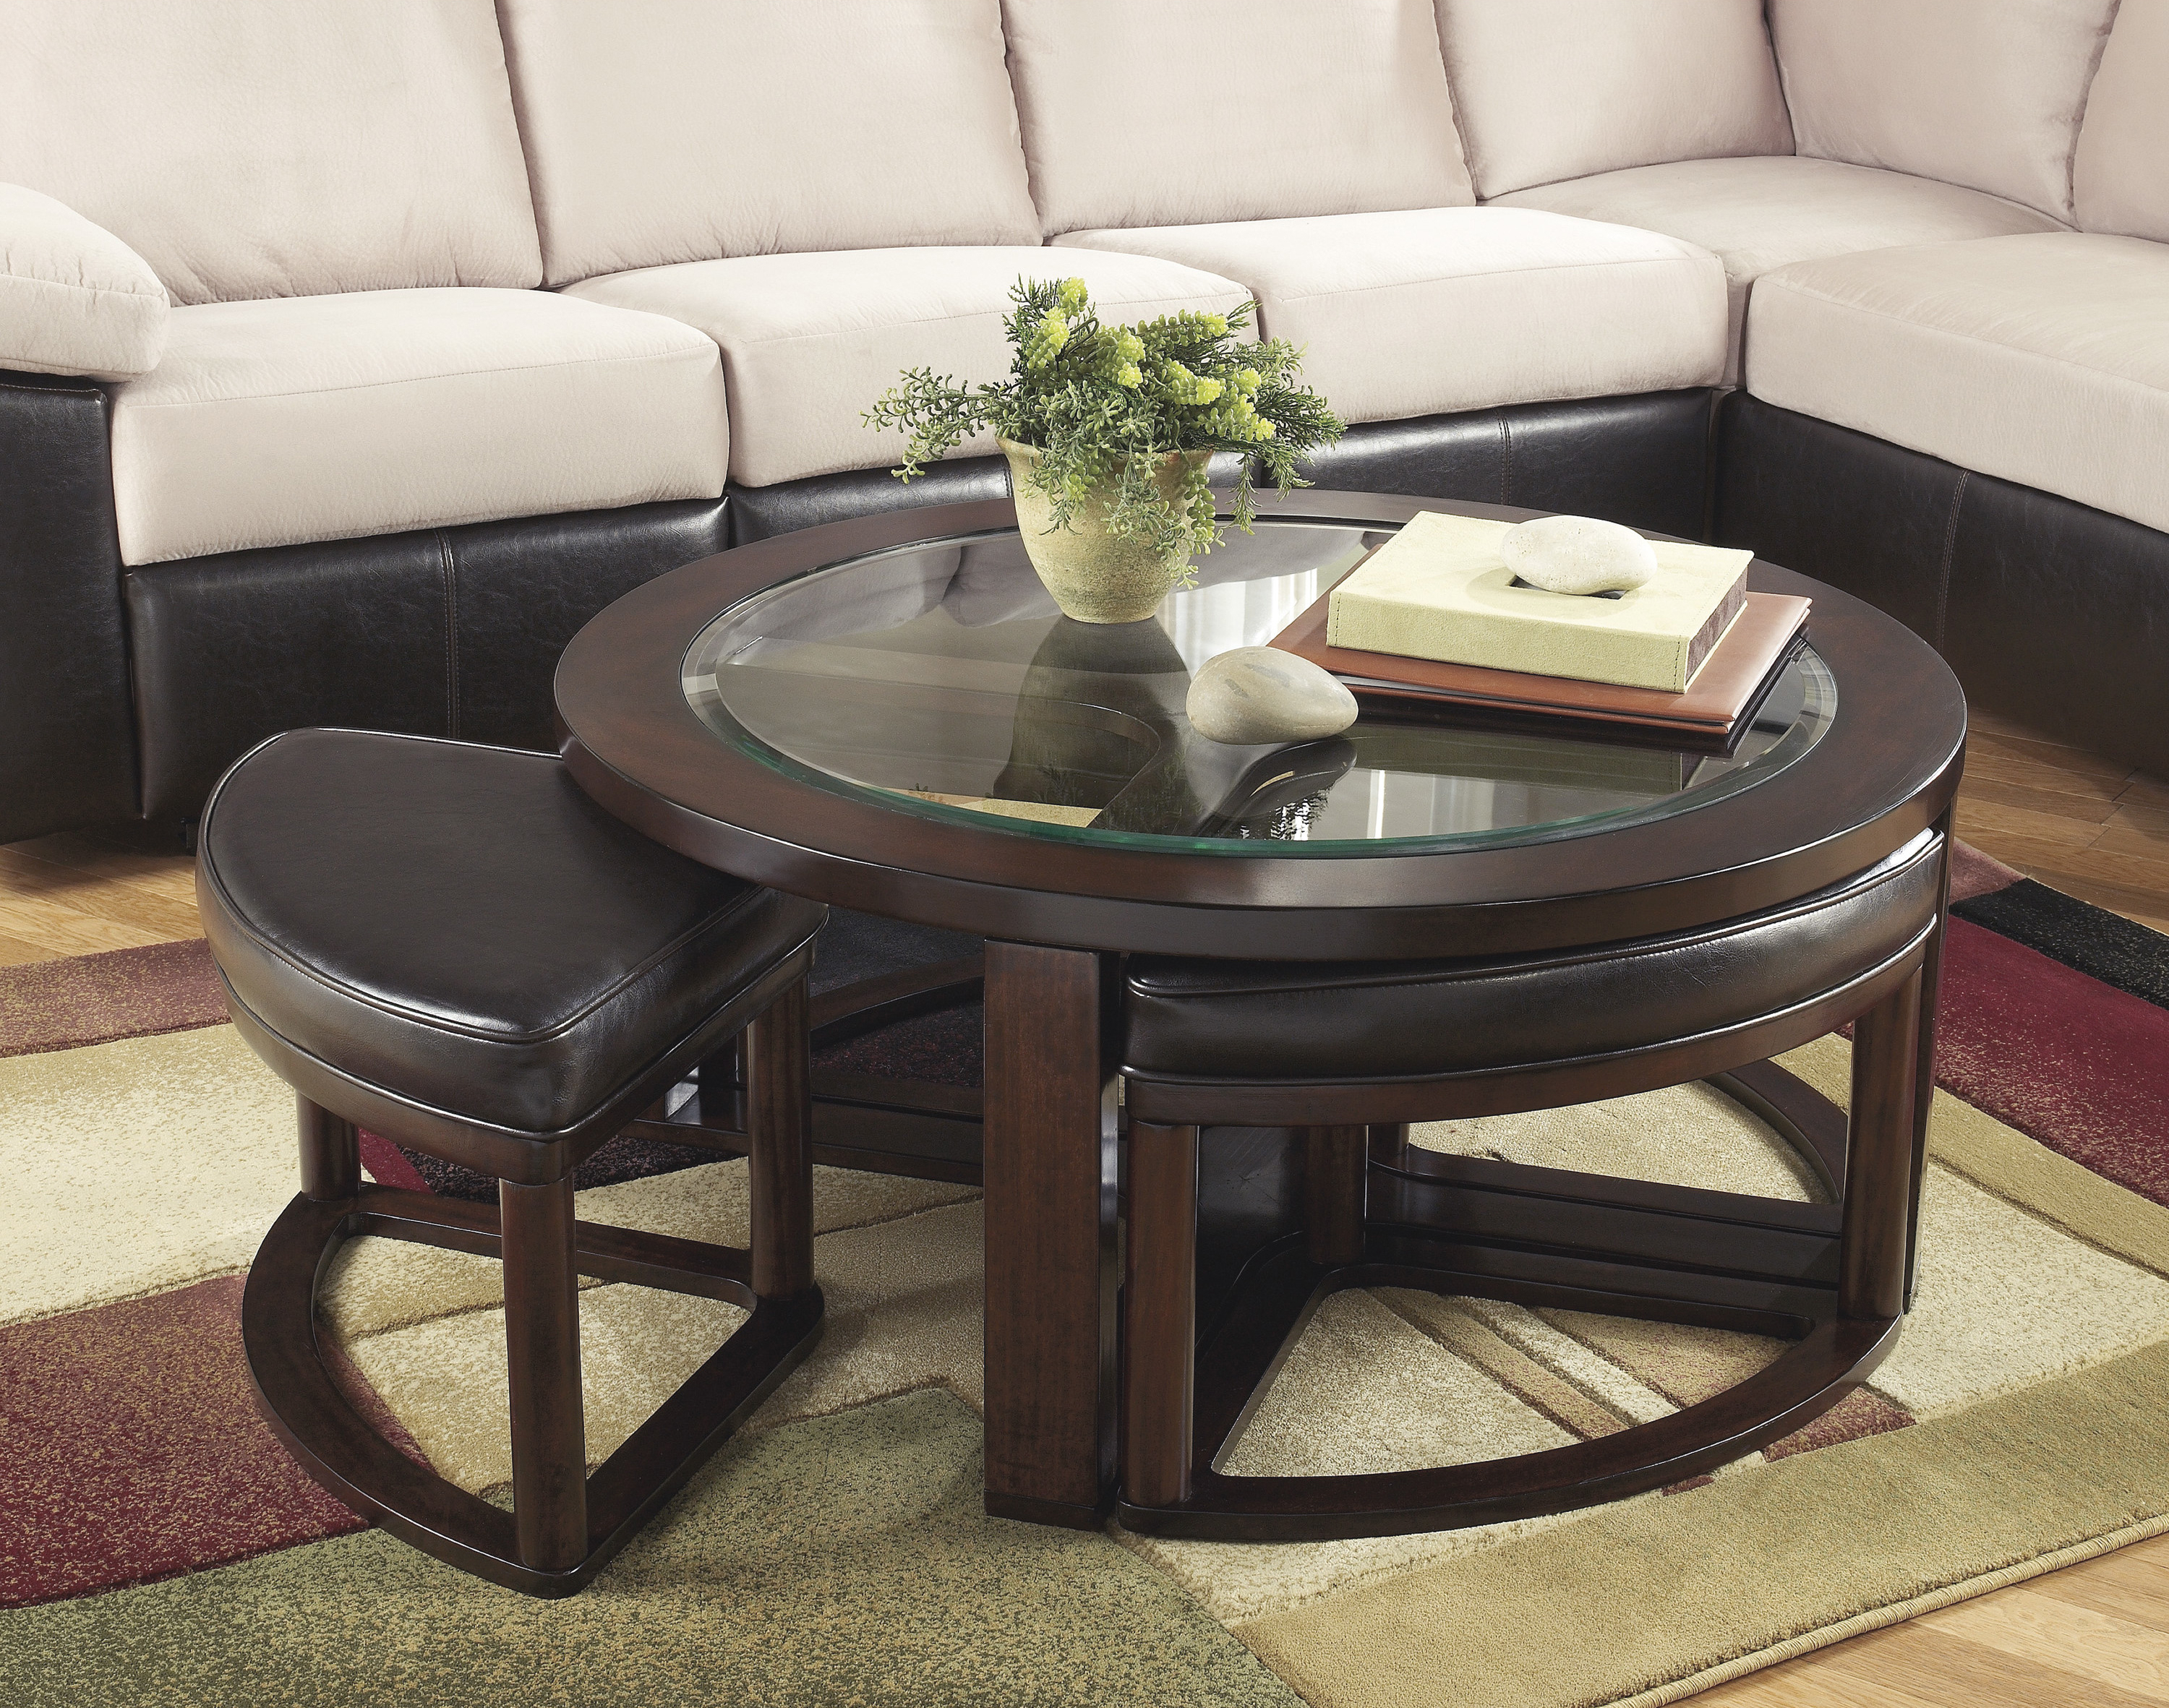 Trendy Unfinished Solid Parawood Bombay Tall Lift Top Coffee Tables Regarding The Best Coffee Tables For Small Spaces (View 18 of 20)